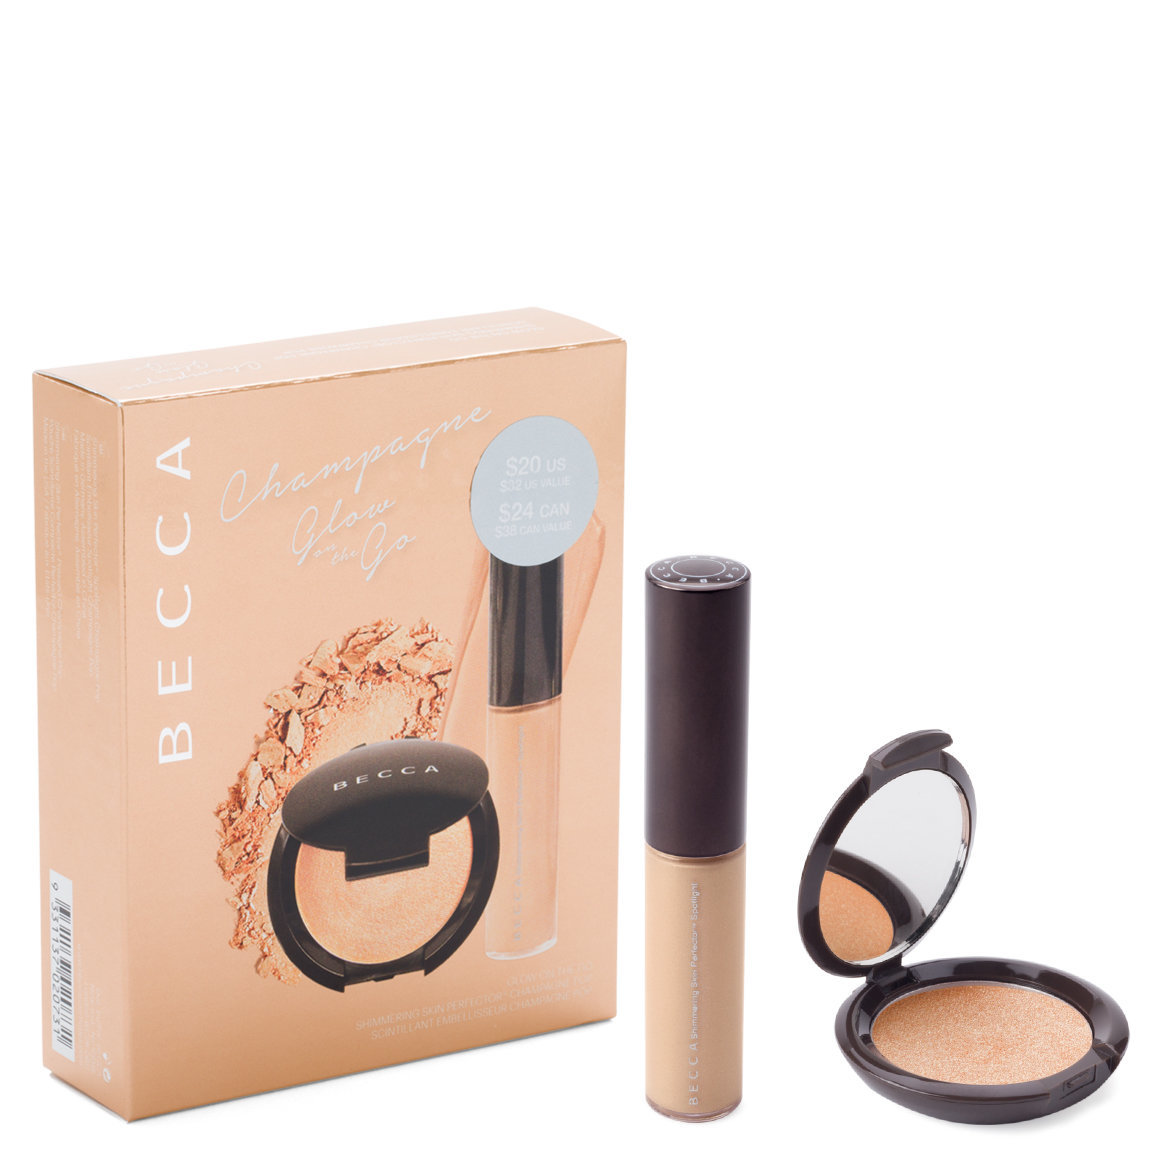 BECCA Shimmering Skin Perfector Champagne Pop Glow On The Go product smear.